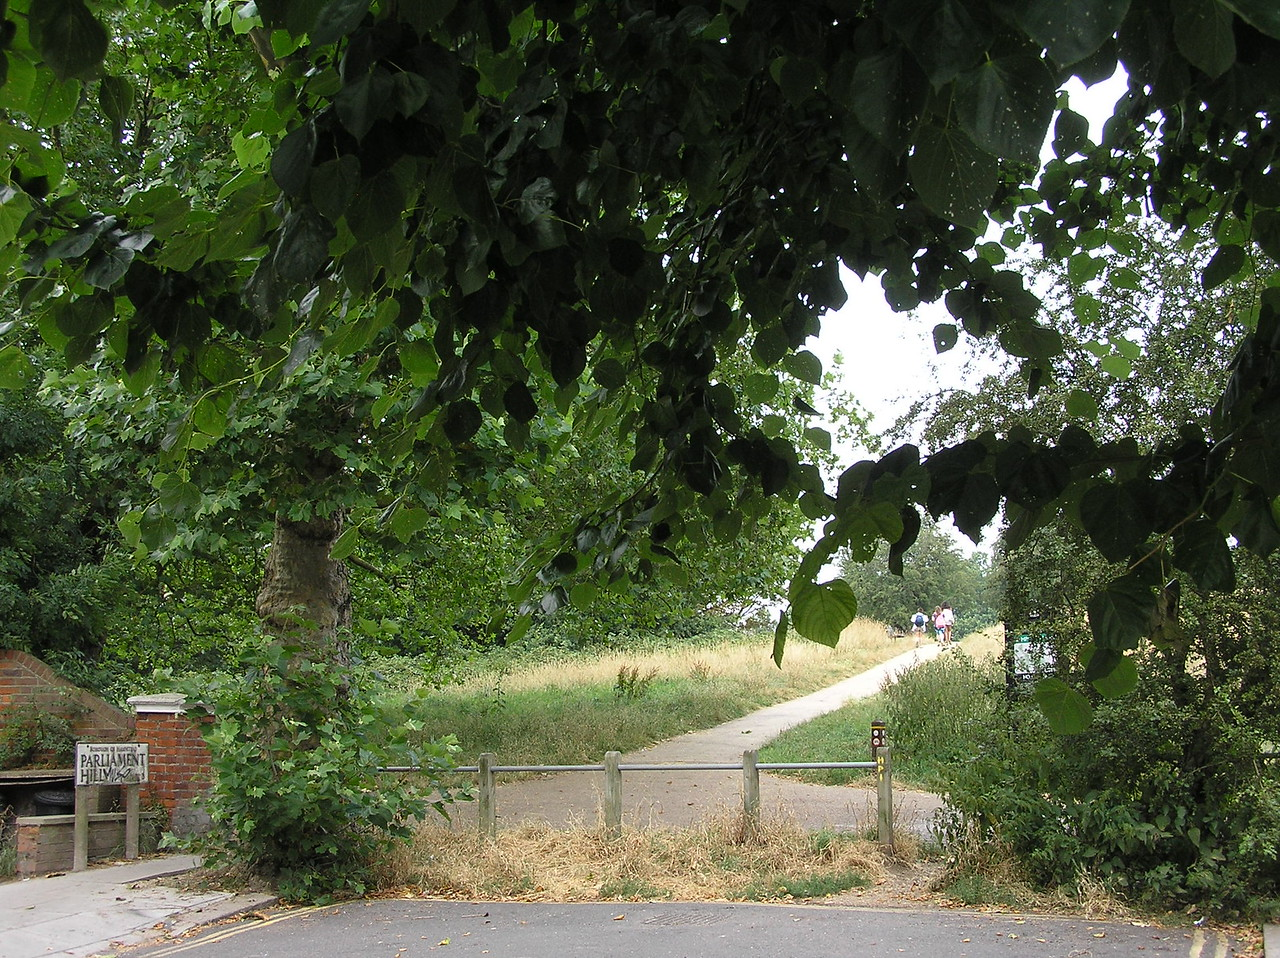 It may be too small to see, but the sign on the left marks the beginning of the Parliament Hill trail. Parliament Hill is one of the highest points in London and is where one can find the Sahlin/Henson bench.